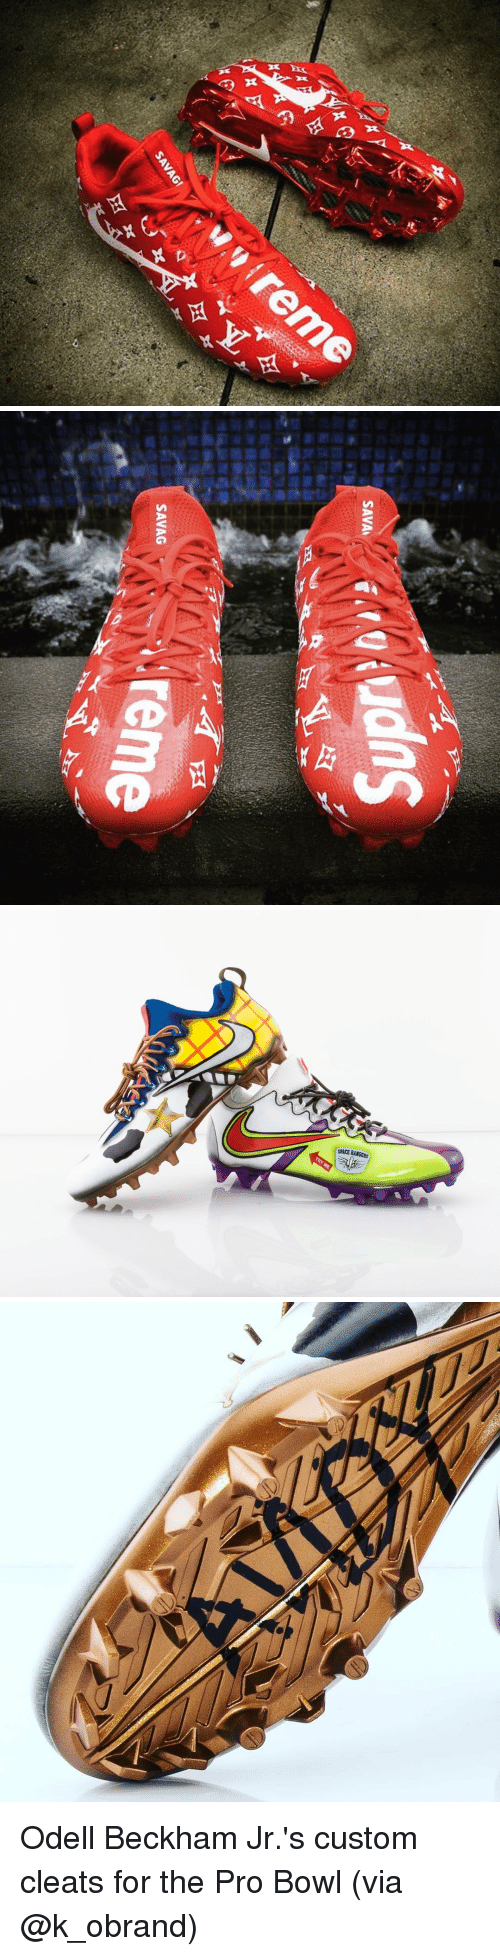 Memes, Odell Beckham Jr., and Sang: din  区  x   cQiuds  SAVA  PA  SANG i reme  SAVAG  201   SPACE RANGERS Odell Beckham Jr.'s custom cleats for the Pro Bowl (via @k_obrand)